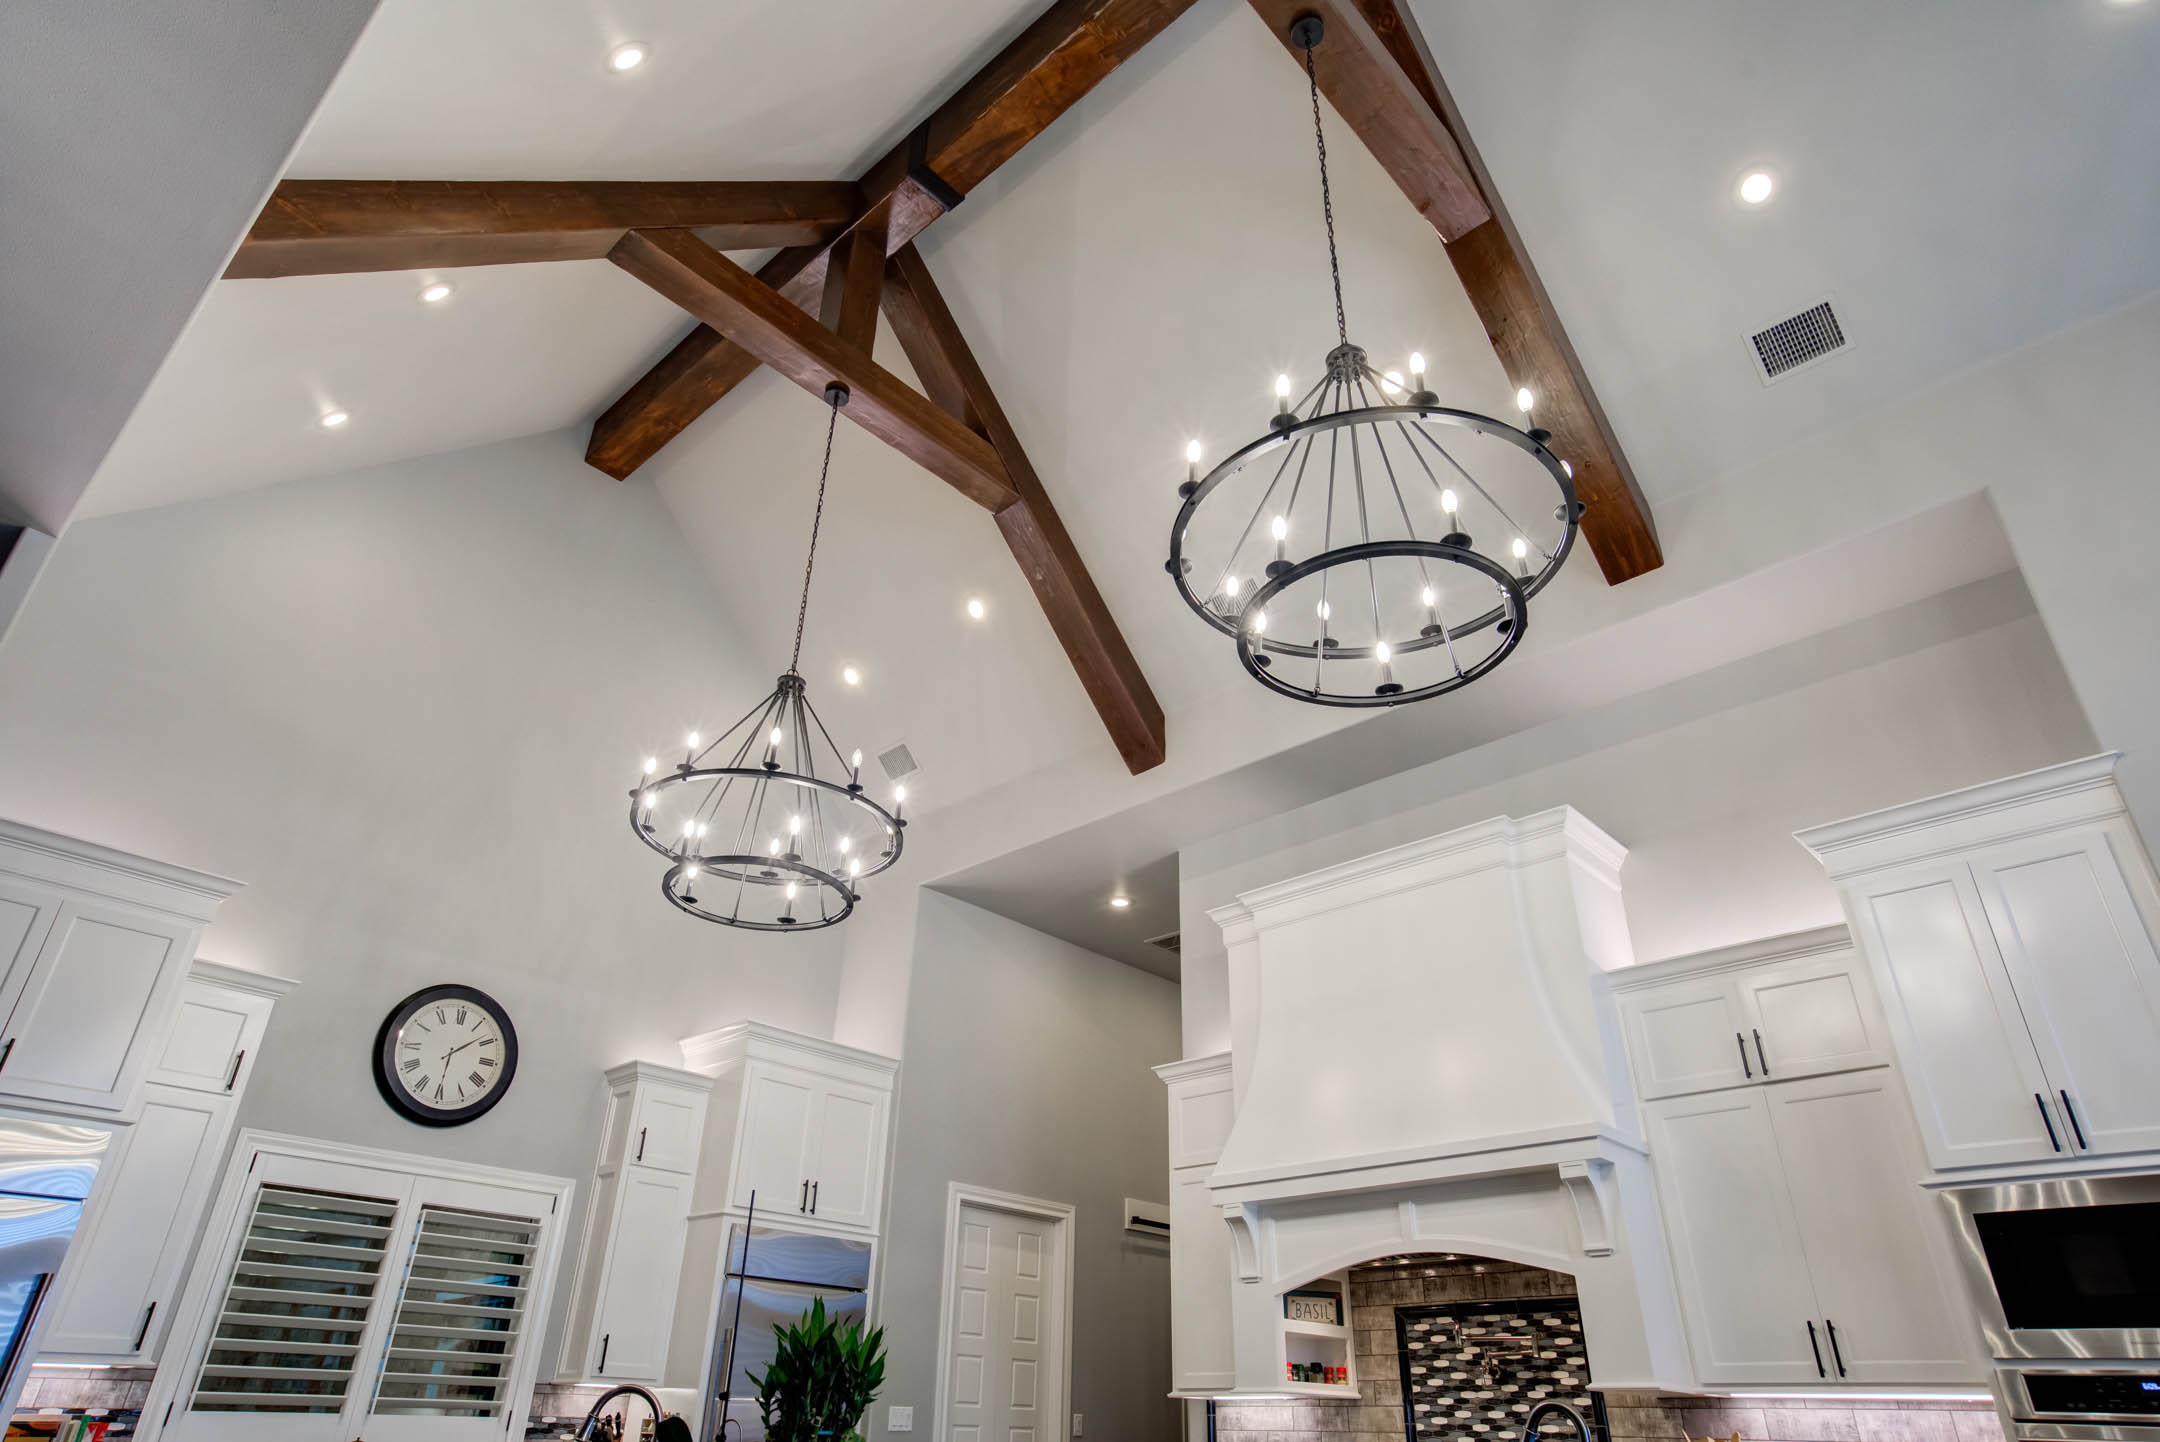 Alternate view of vaulted ceiling in kitchen of custom home in Lubbock, Texas.